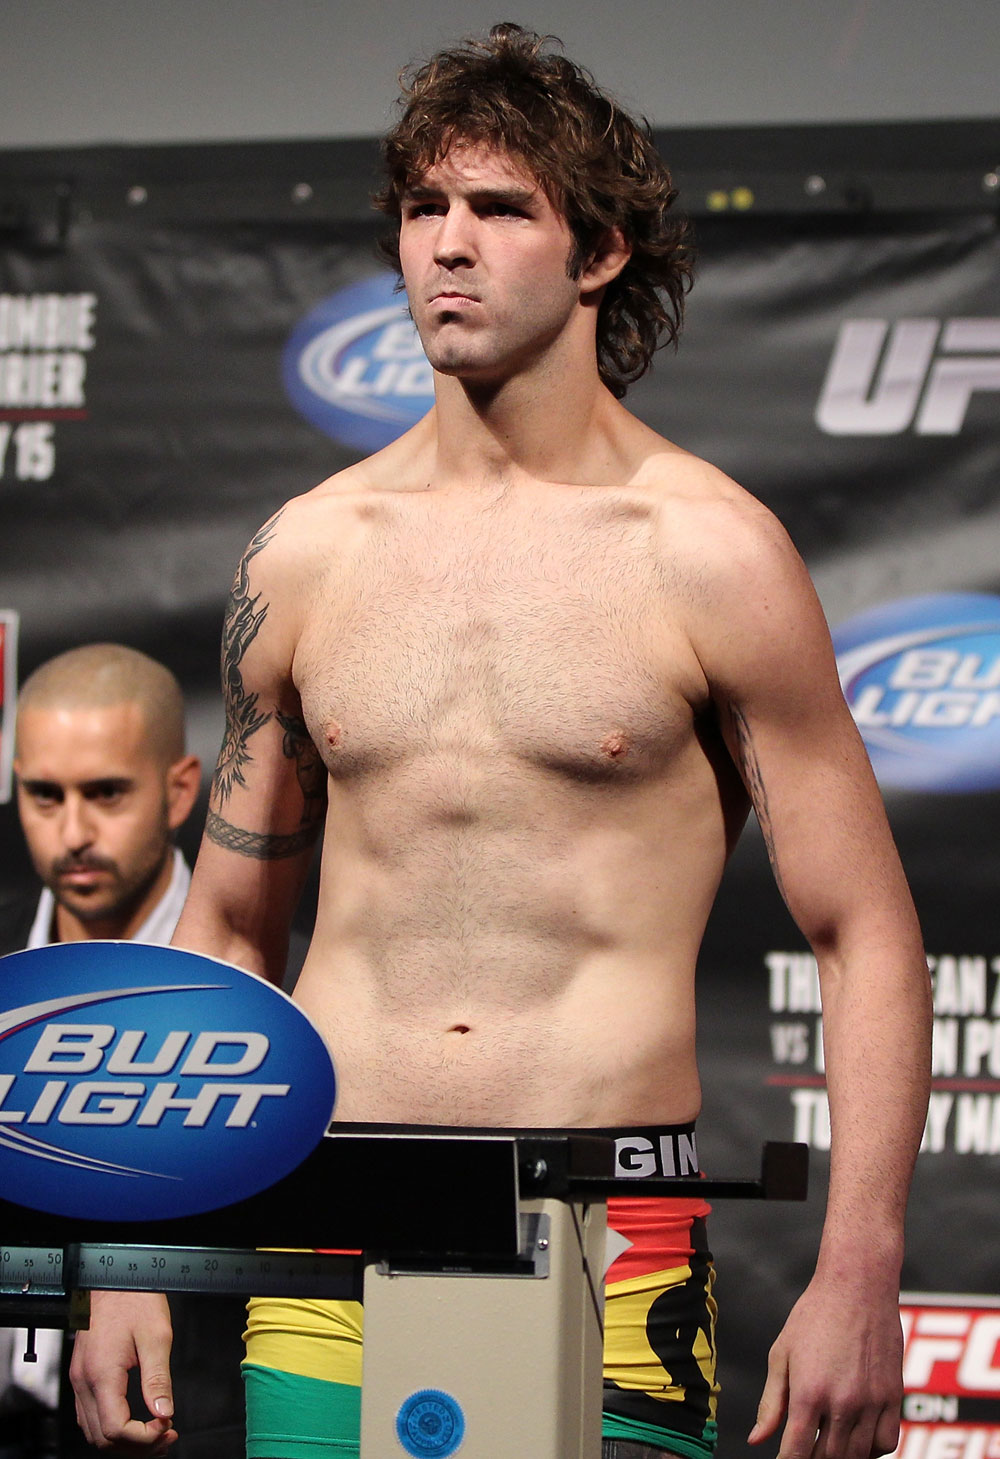 UFC featherweight Cody McKenzie